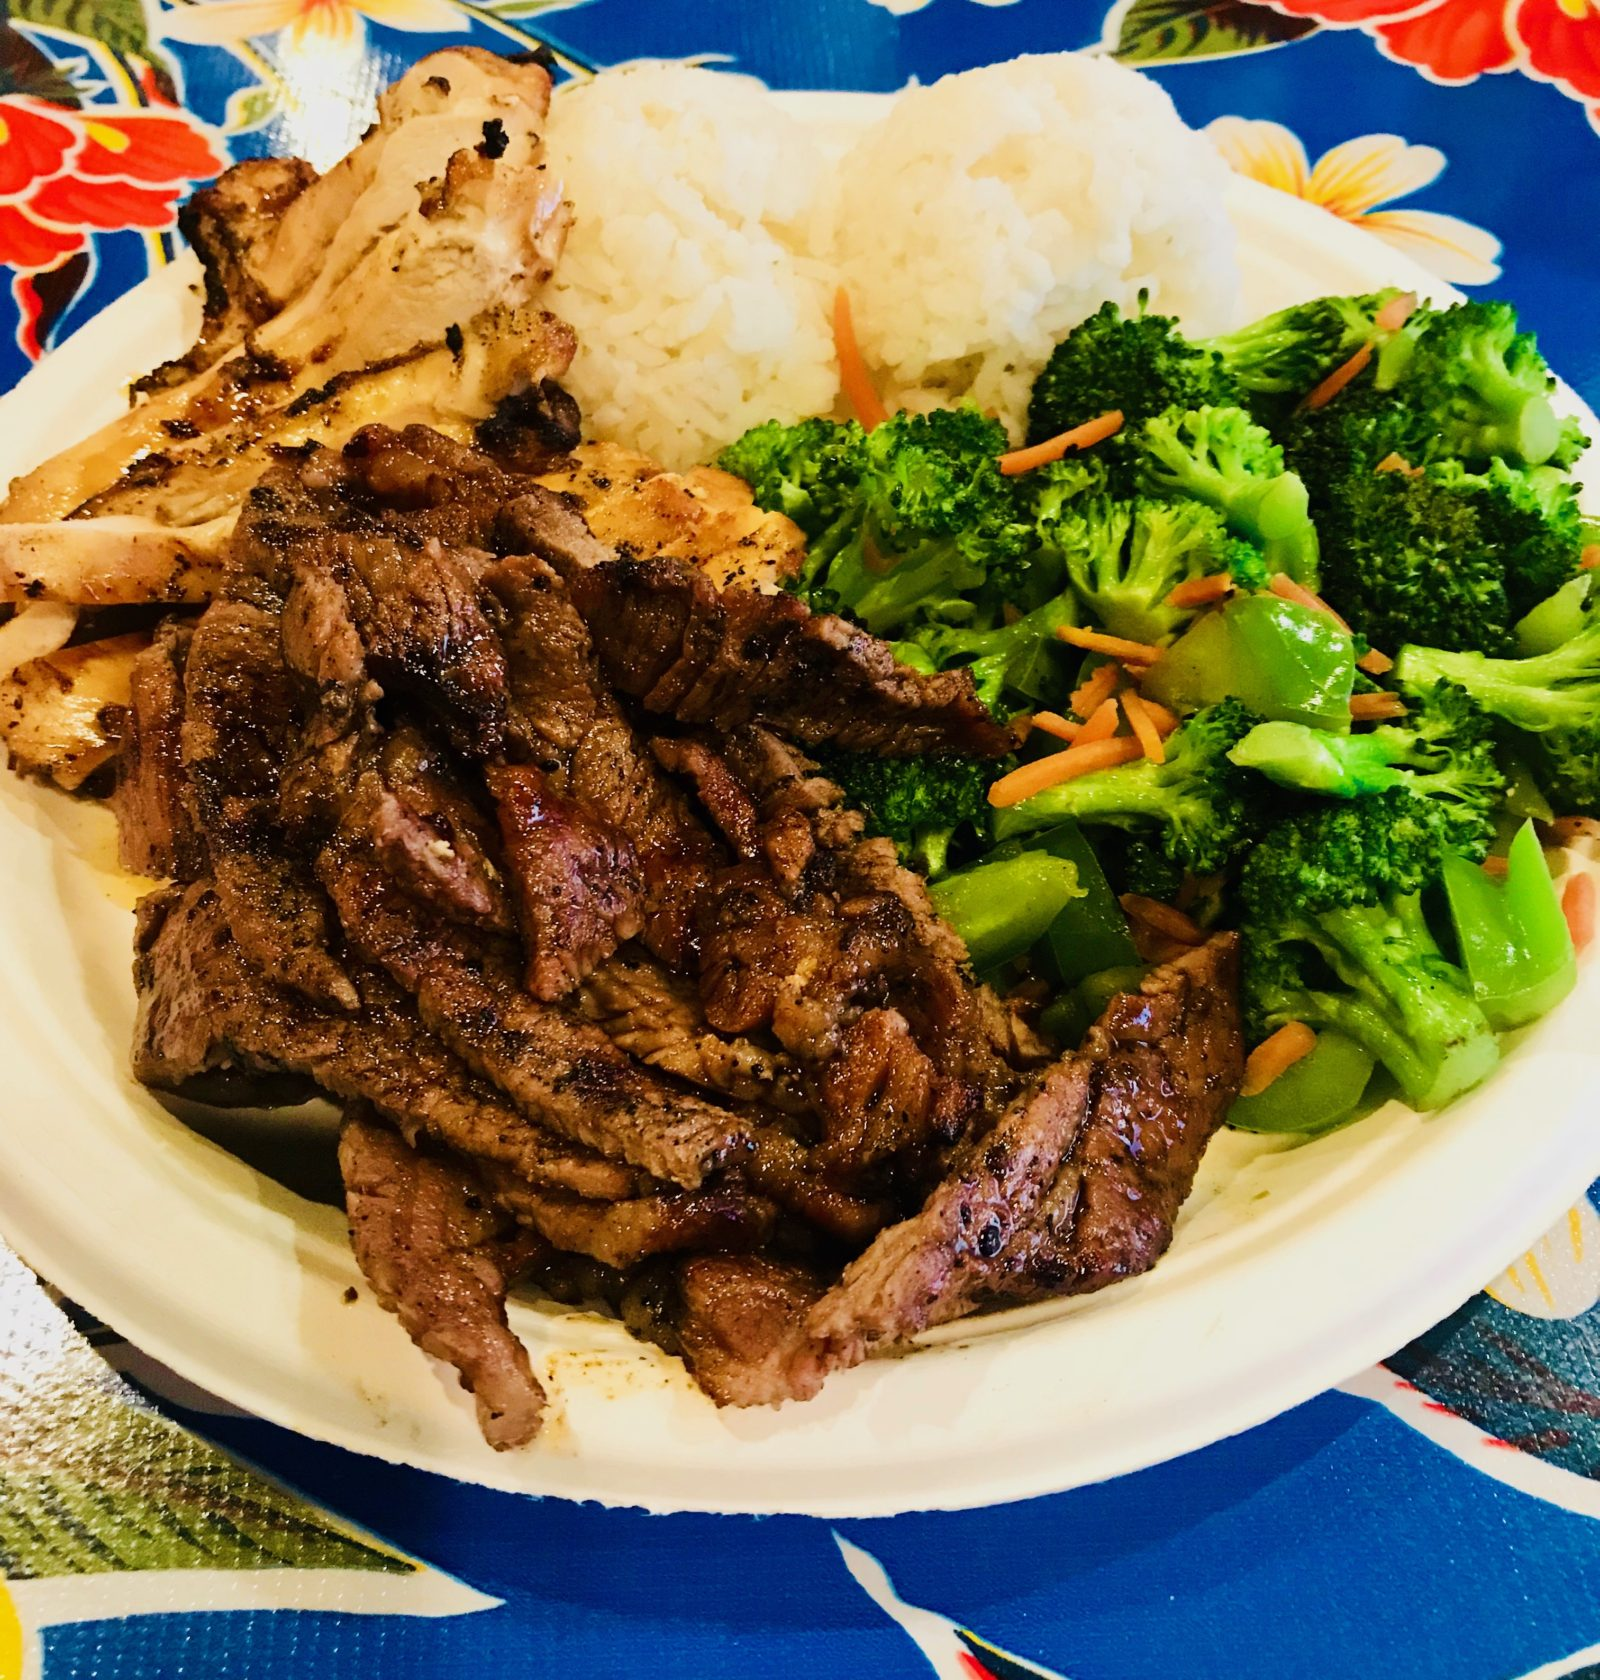 Pick of the Week - Mama's Hawaiian BBQ - Combo Plate with Teriyaki Beef and Teriyaki Chicken